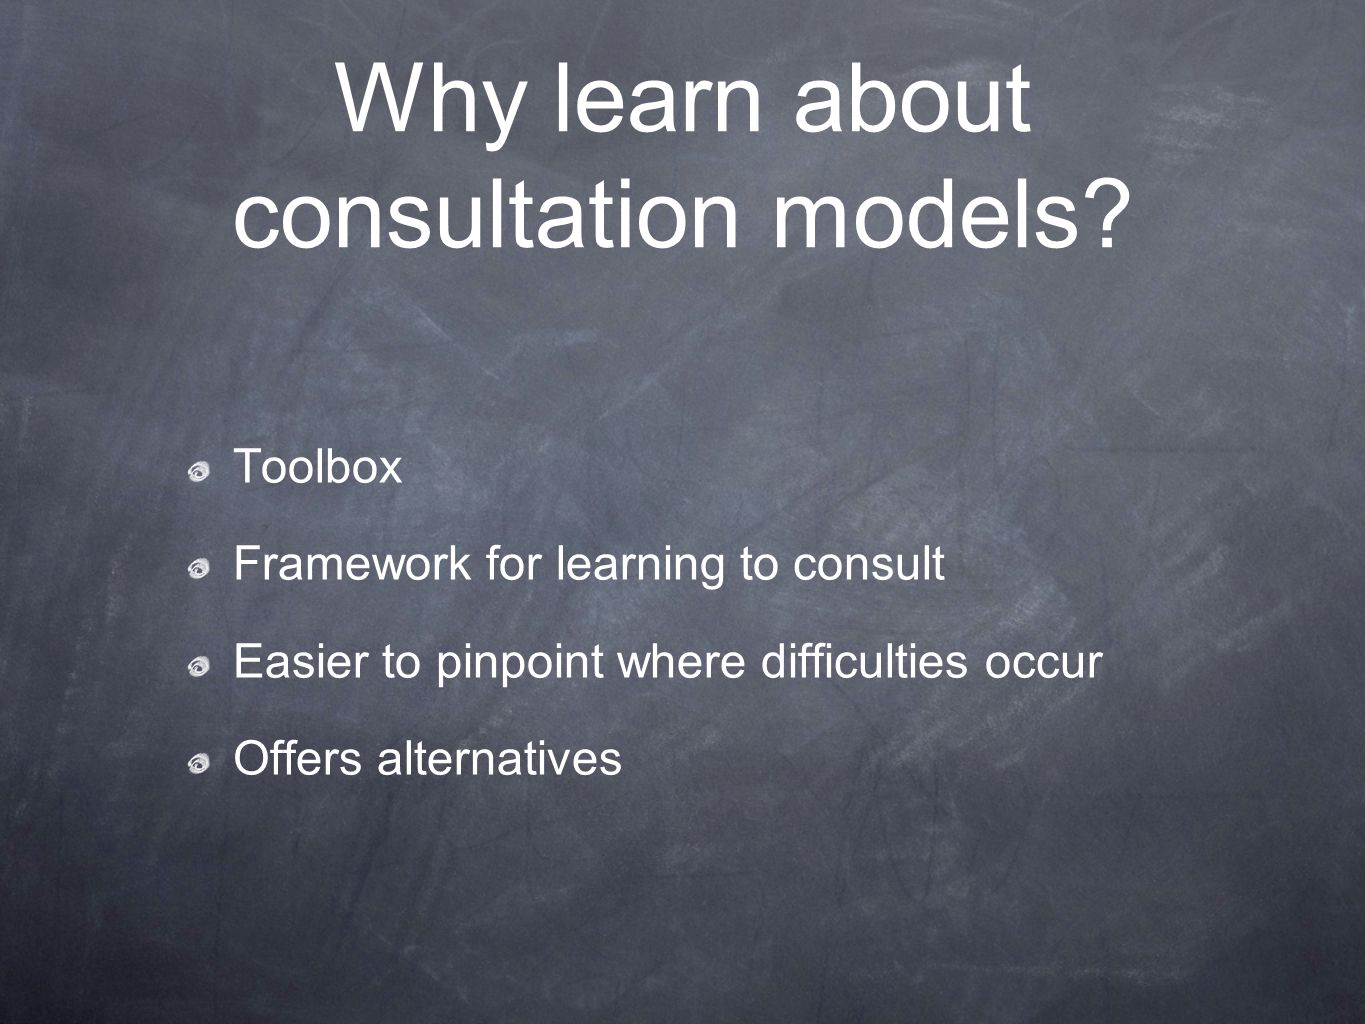 Why learn about consultation models